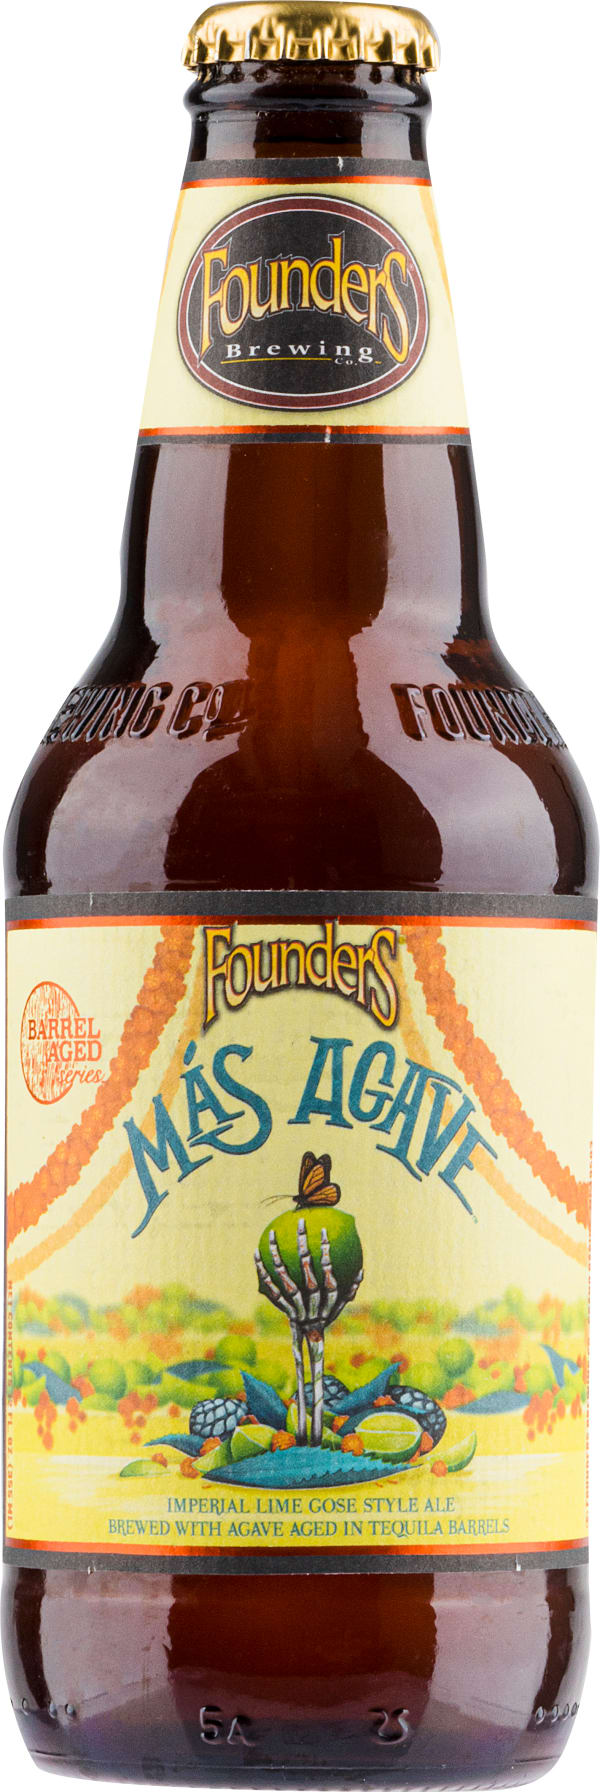 Founders Mas Agave